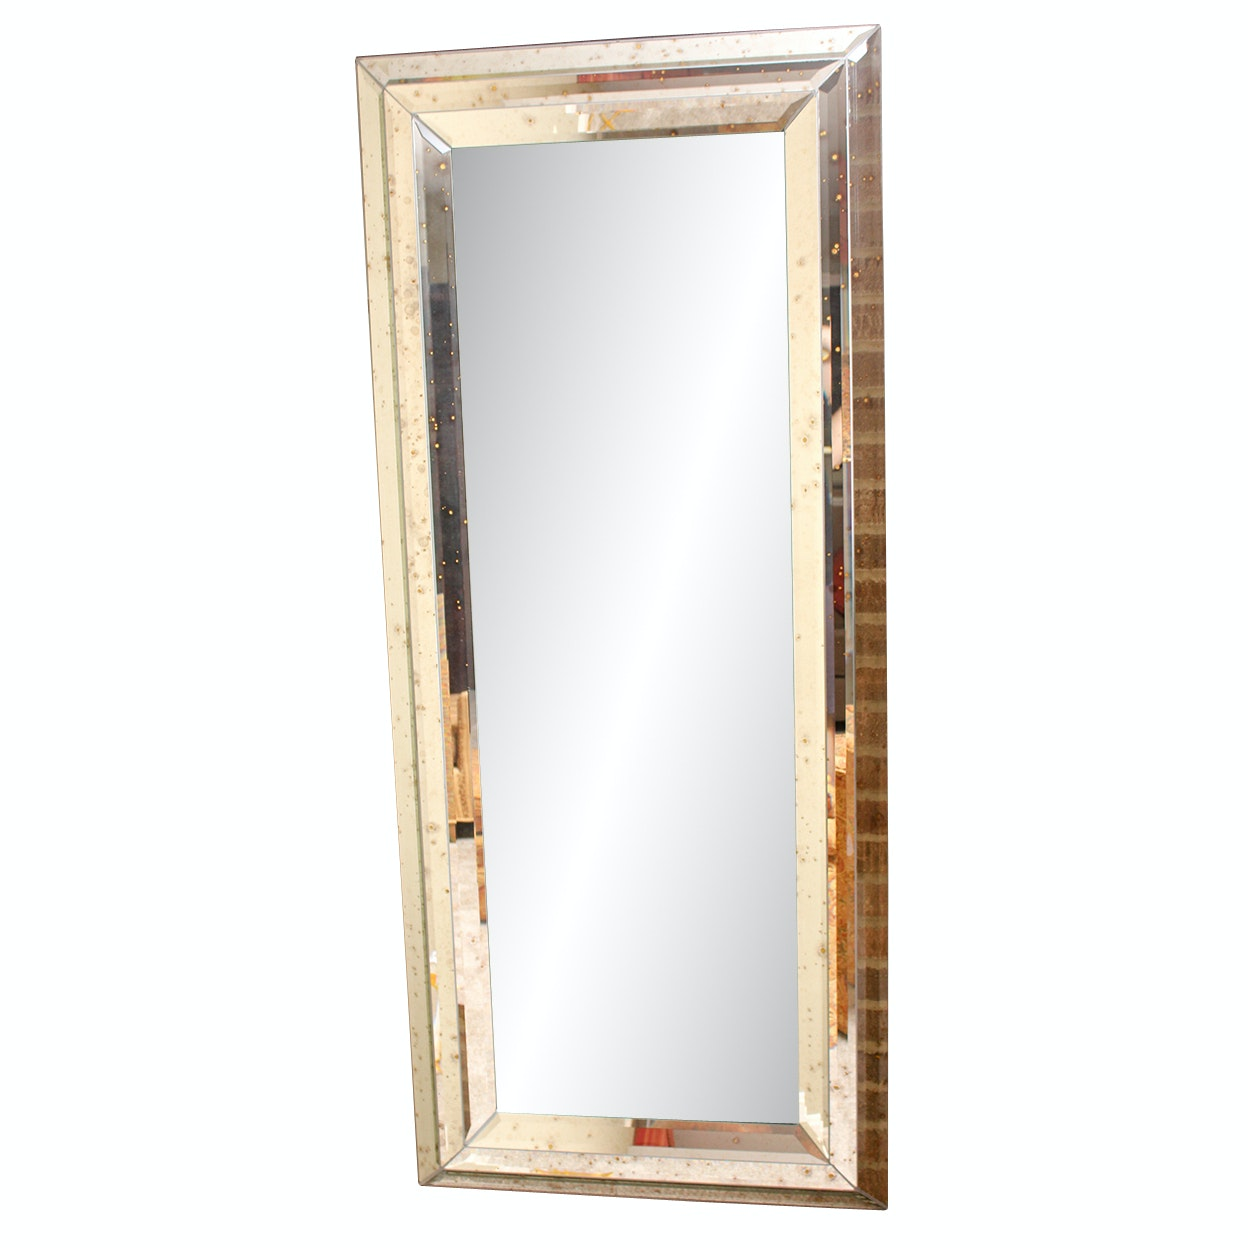 Full-Length Mirror with Mercury Glass Style Beveled Frame